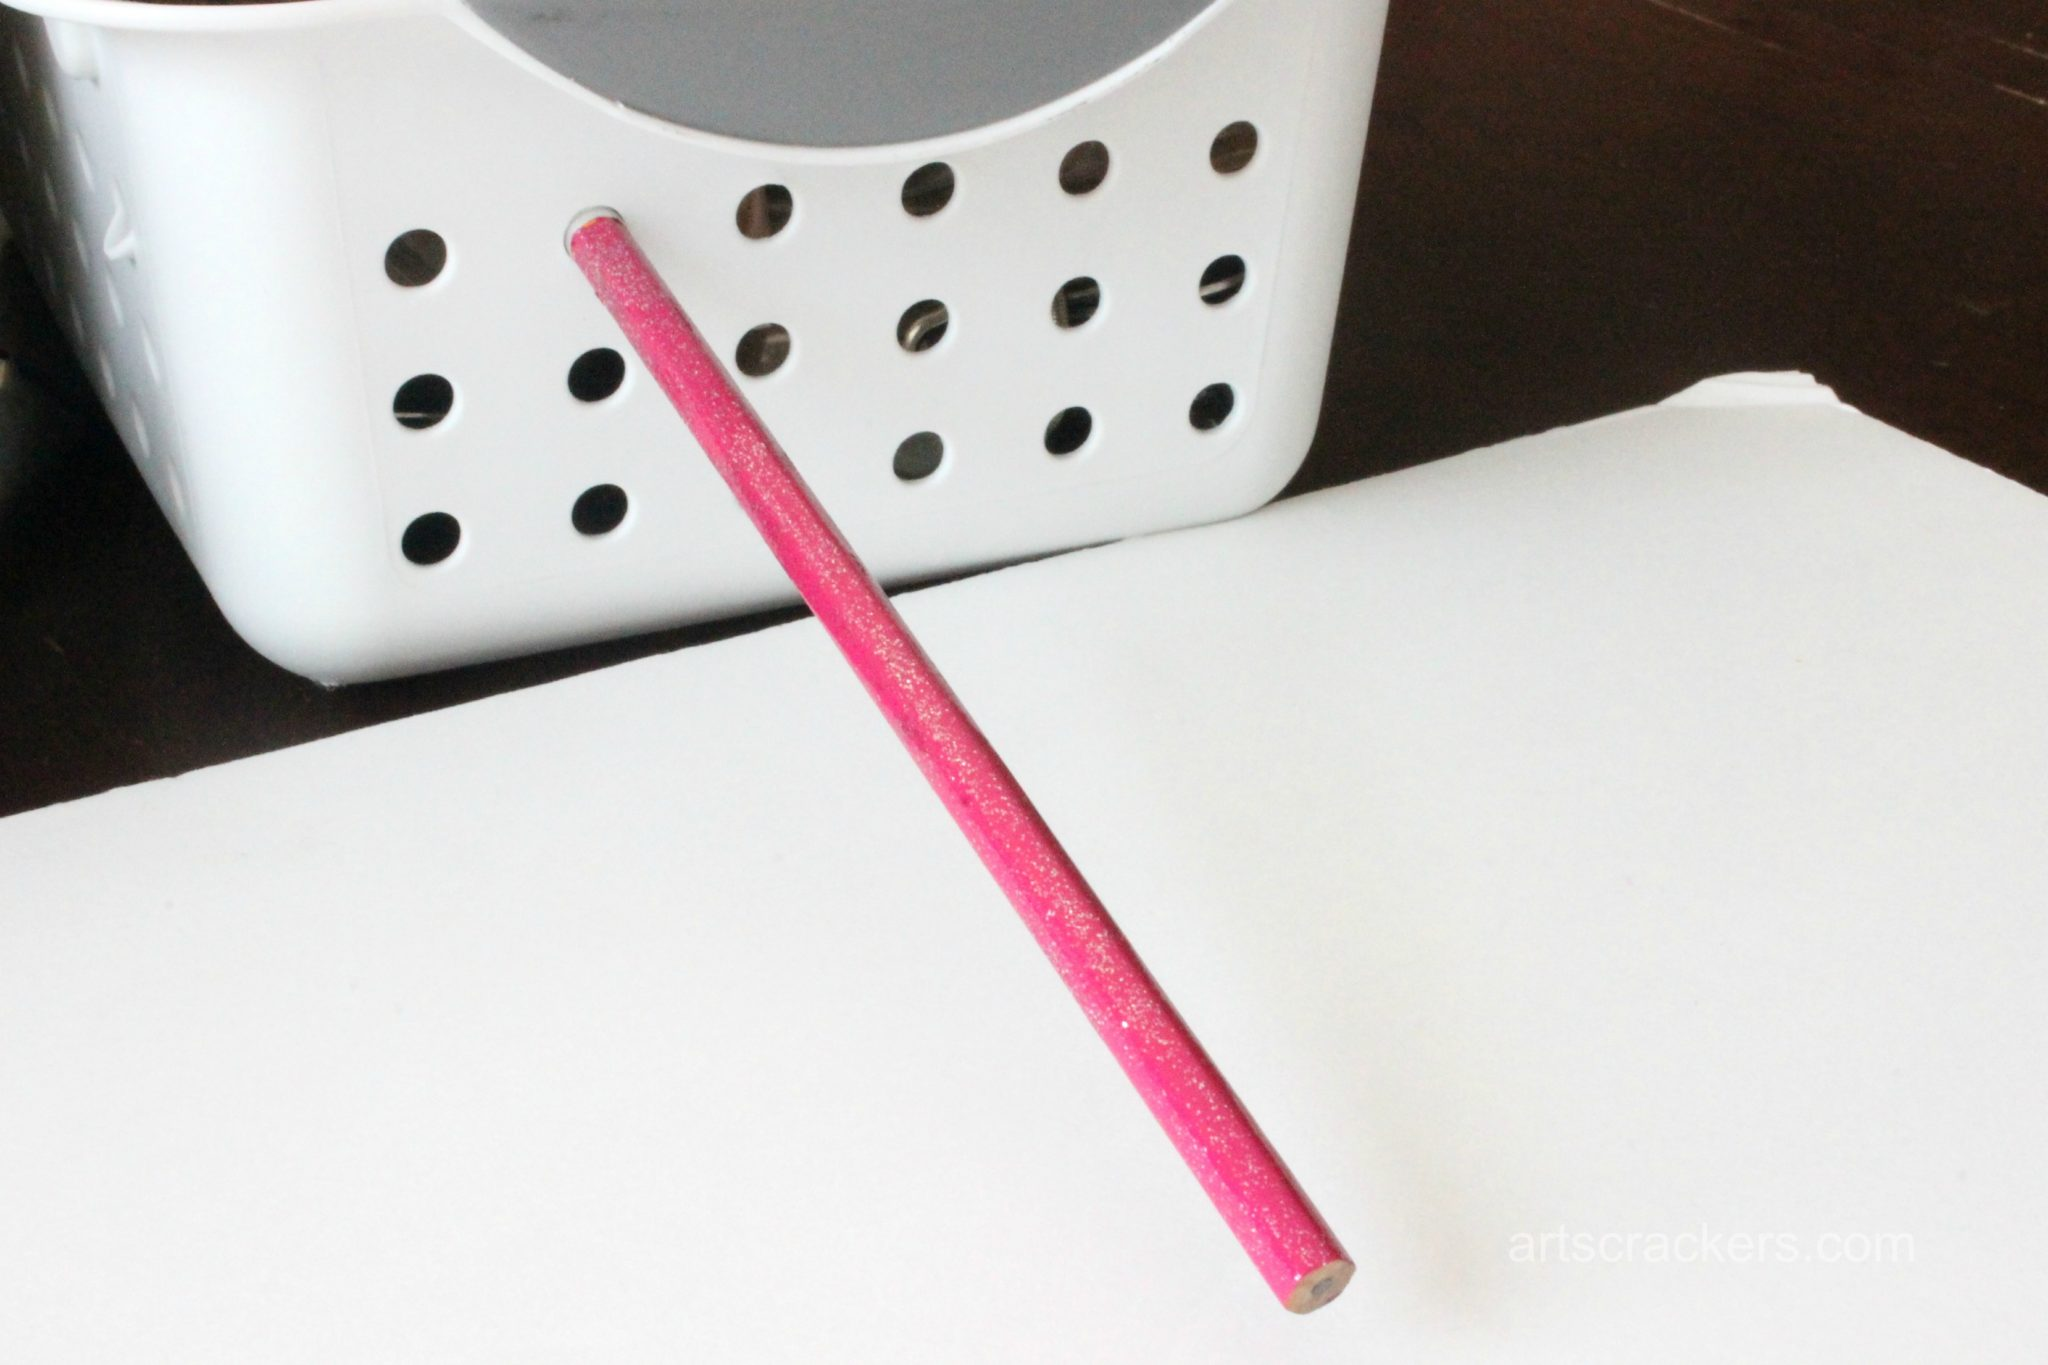 Back to School Pencil Craft Step 3